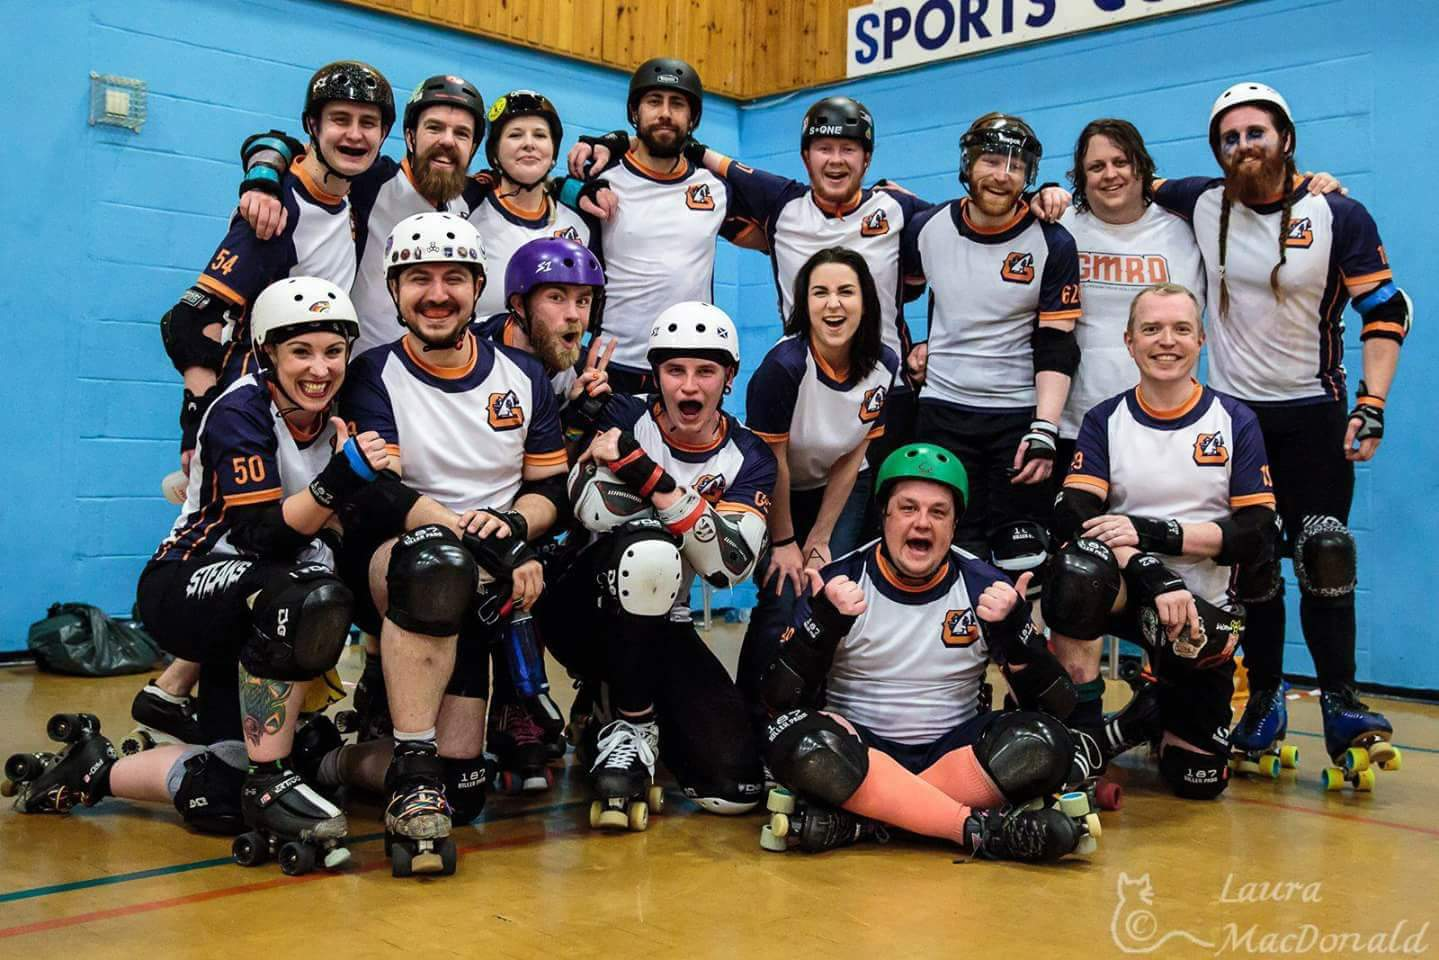 Glasgow Men's Roller Derby